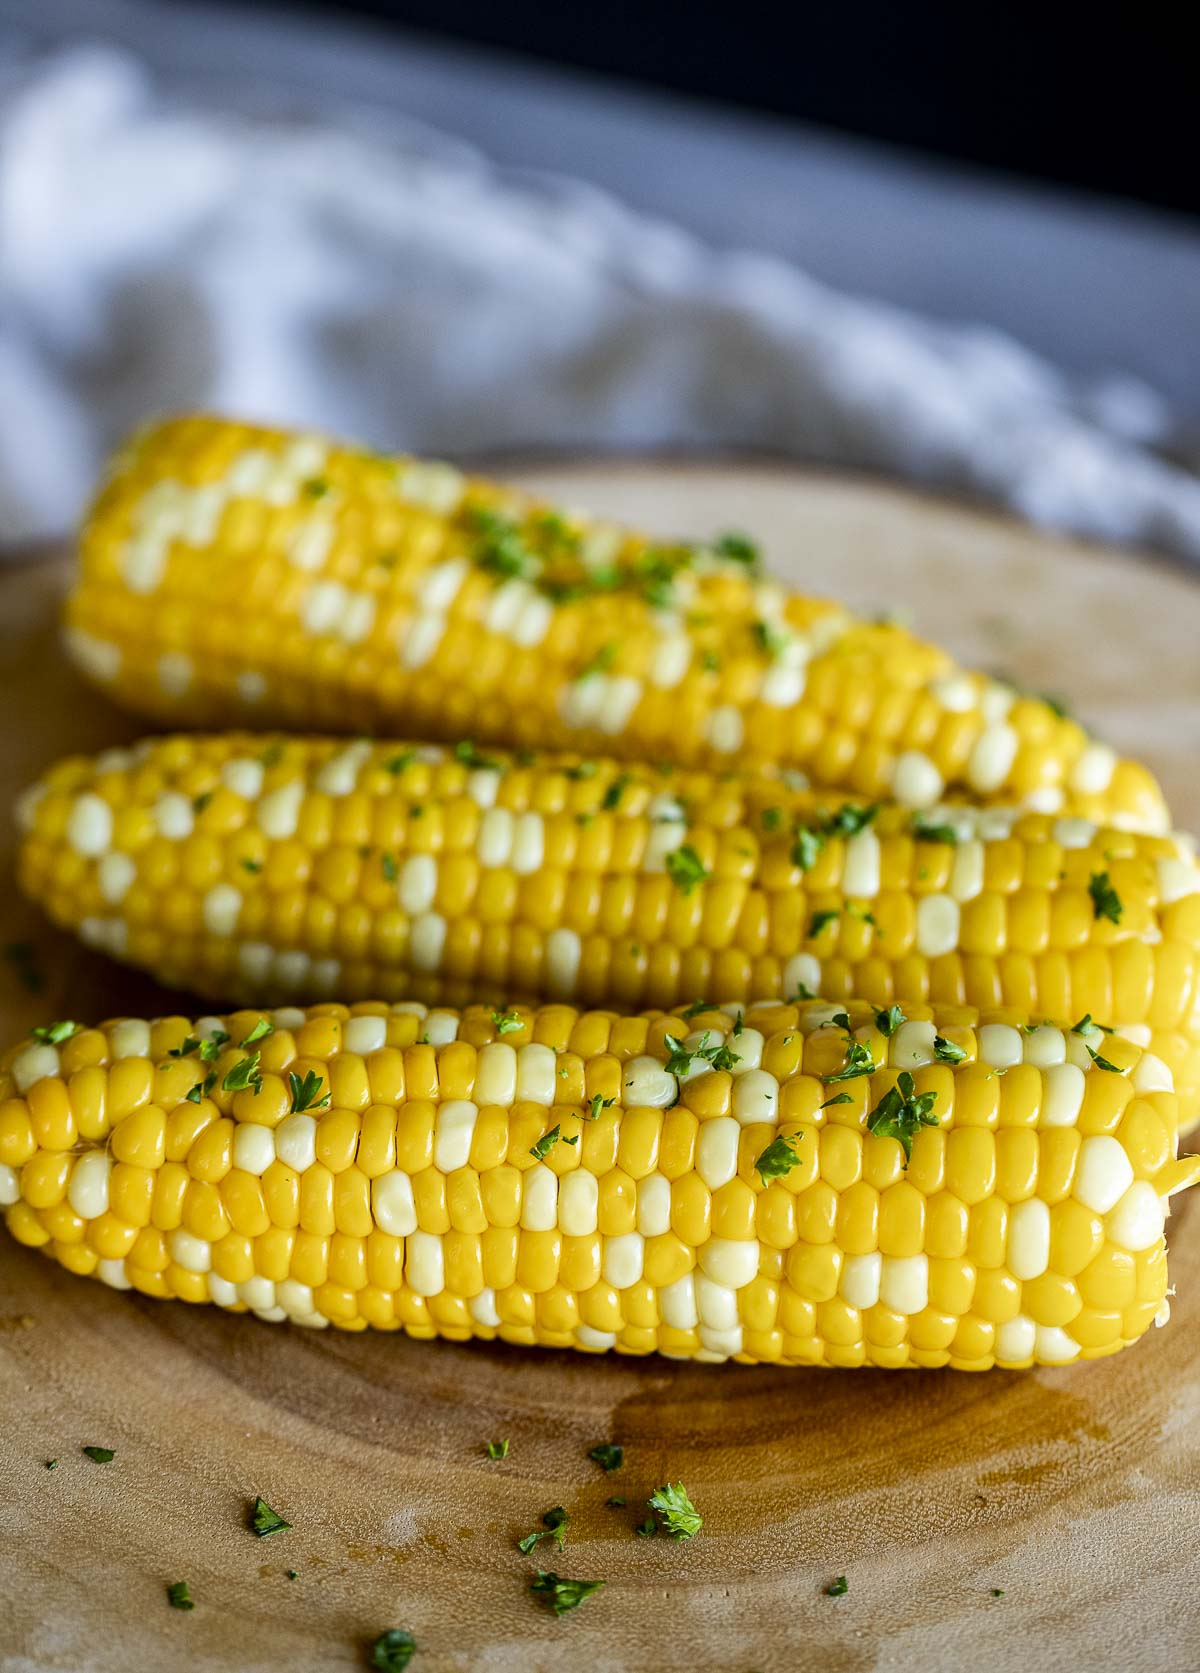 Side view of cooked corn topped with chopped fresh herbs.